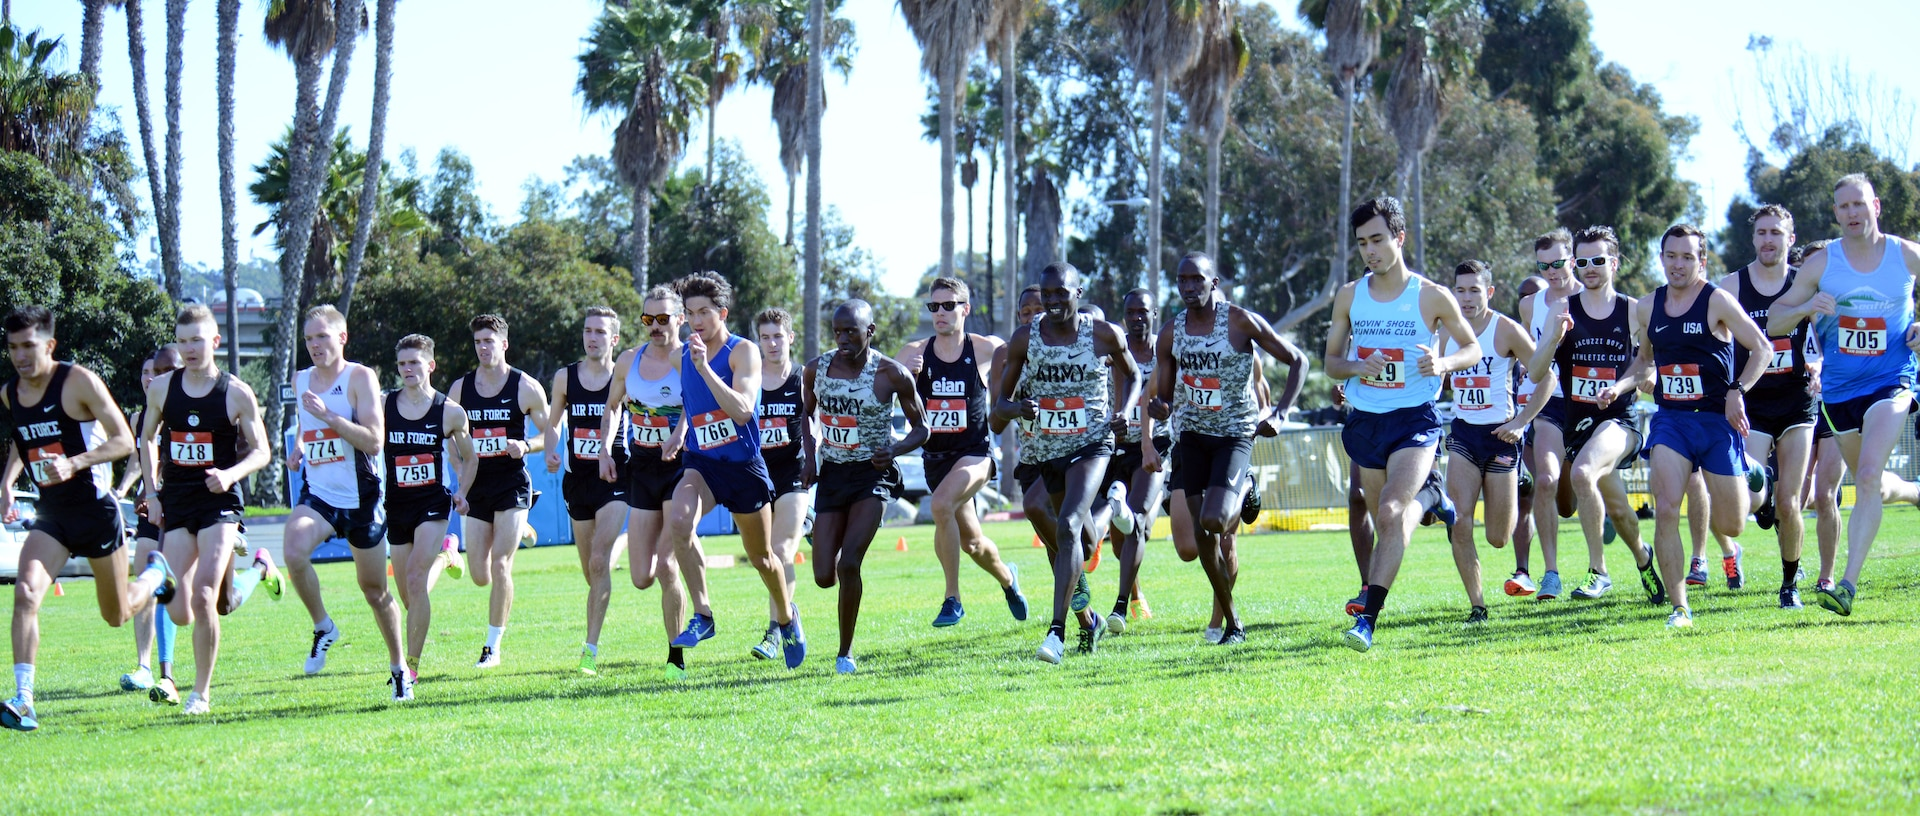 Runners begin the Armed Forces Cross Country Championship, run in conjunction with the USA Track and Field senior men 10K race at Mission Bay Park in San Diego, Jan. 18, 2019.